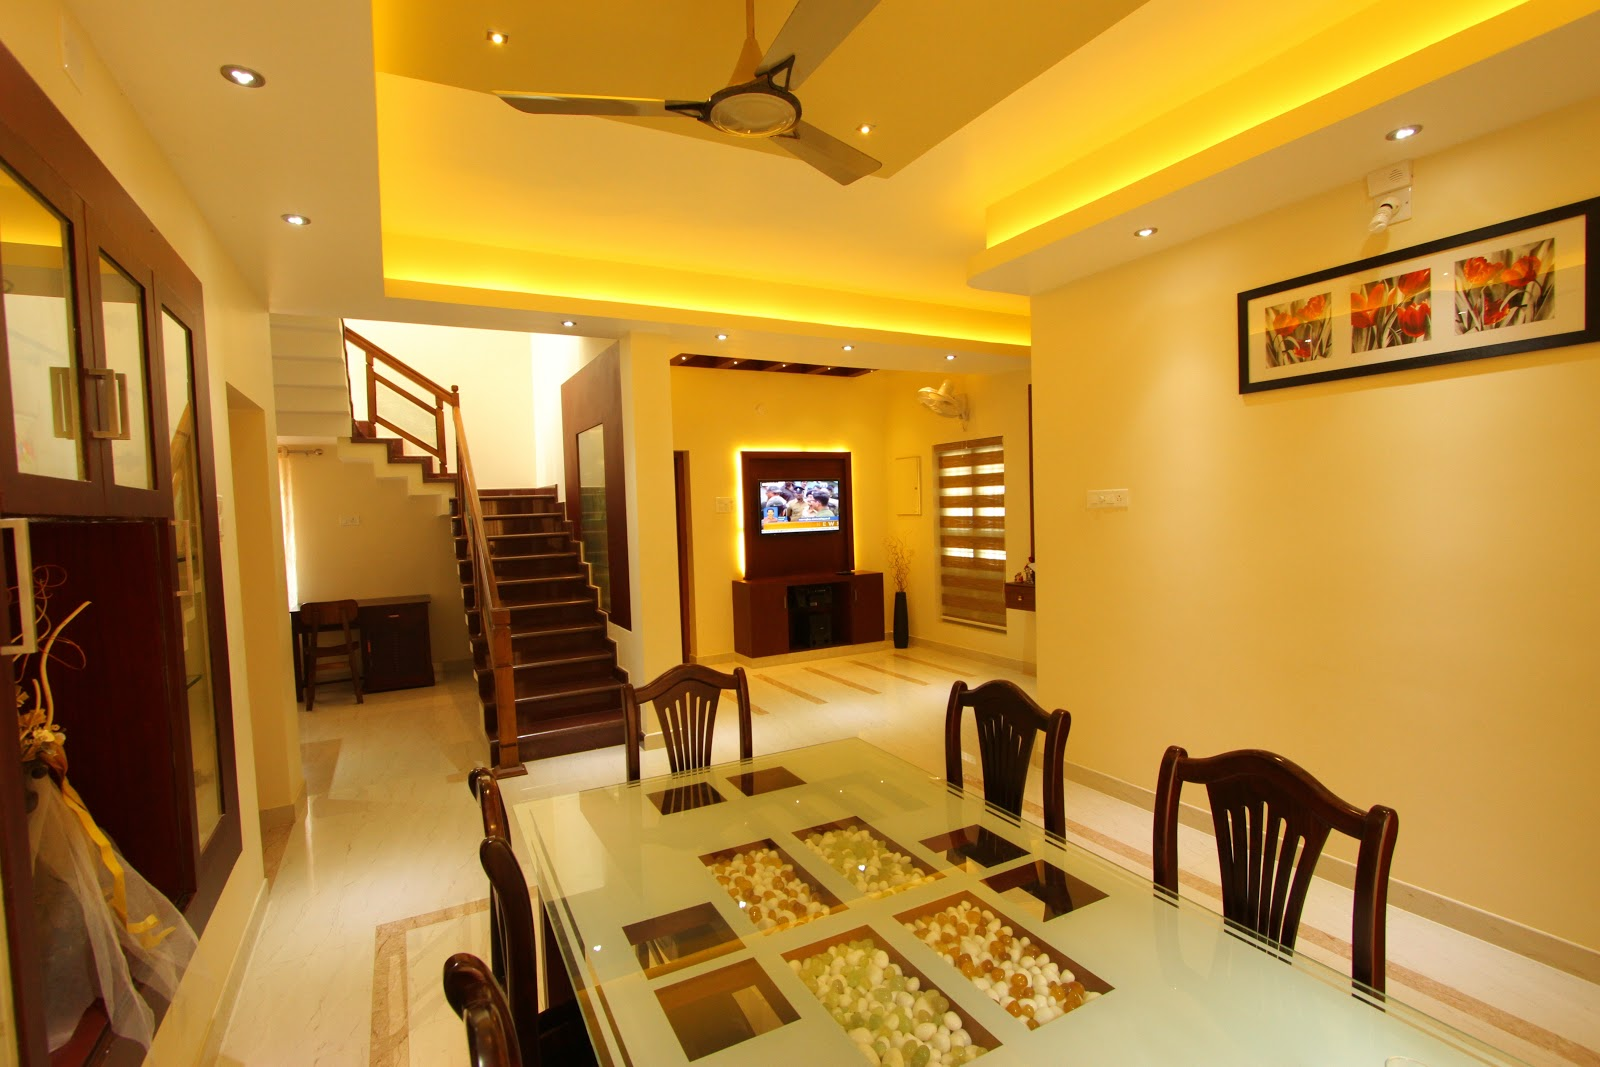 Shilpakala Interiors Award Winning Home Interior Design By Shilpakala Interiors